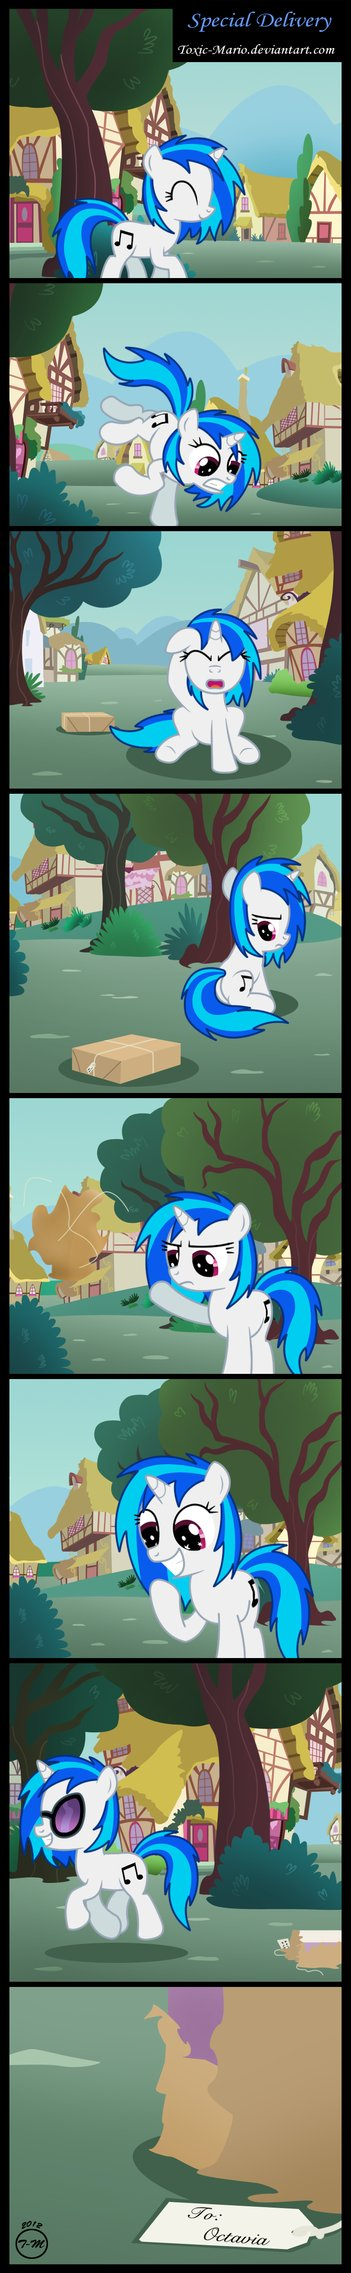 Special Delivery By Toxic Mario Mlp Pinterest